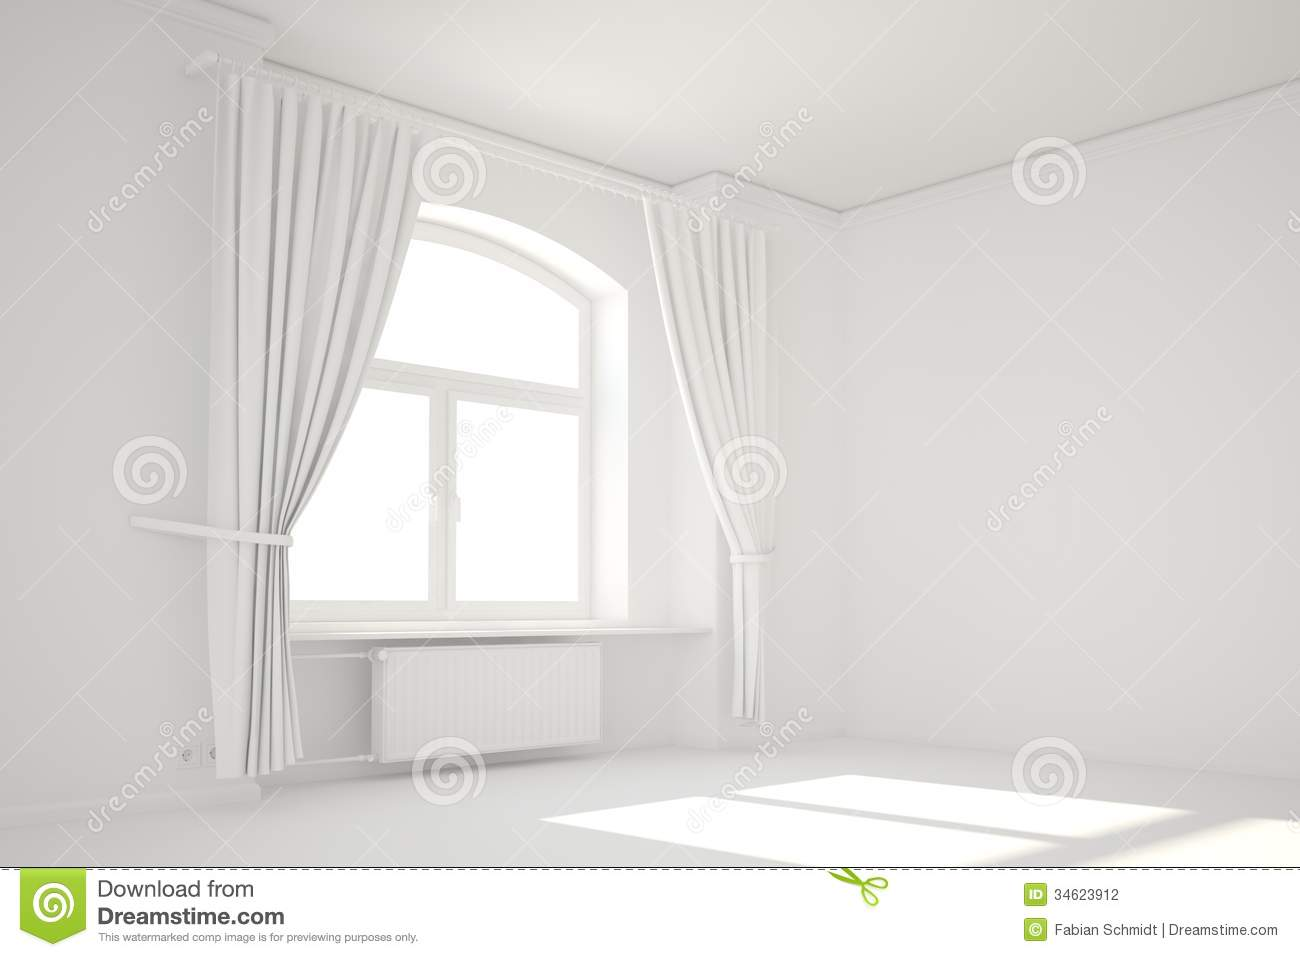 the gallery for empty room with window curtains. Black Bedroom Furniture Sets. Home Design Ideas